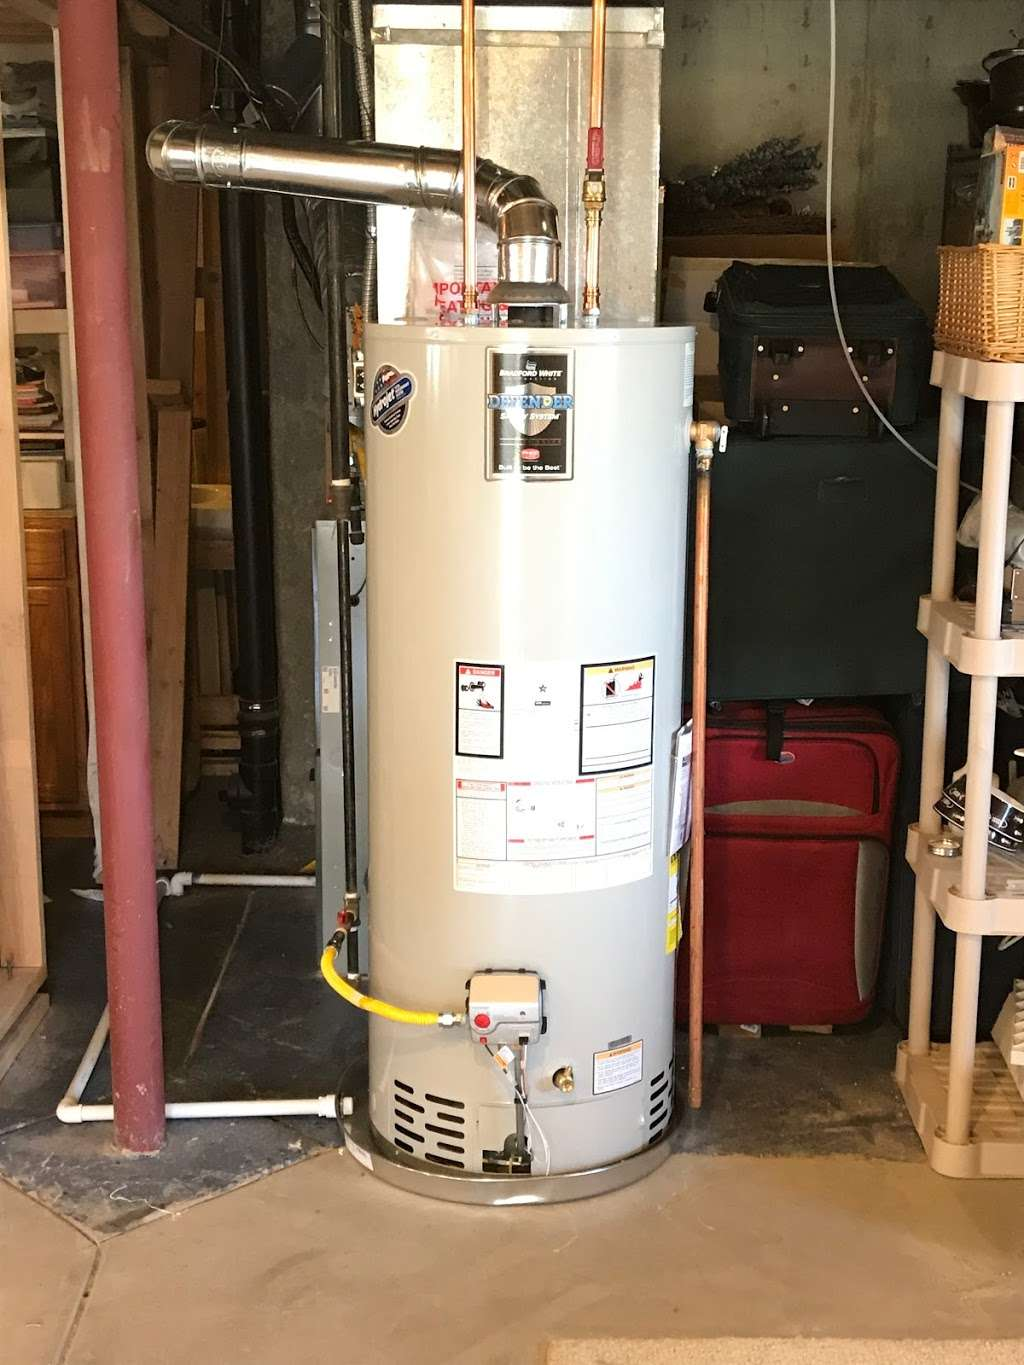 Hardline Plumbing and Heating - plumber  | Photo 3 of 10 | Address: 185 Lawley Dr, Erie, CO 80516, USA | Phone: (720) 576-8211